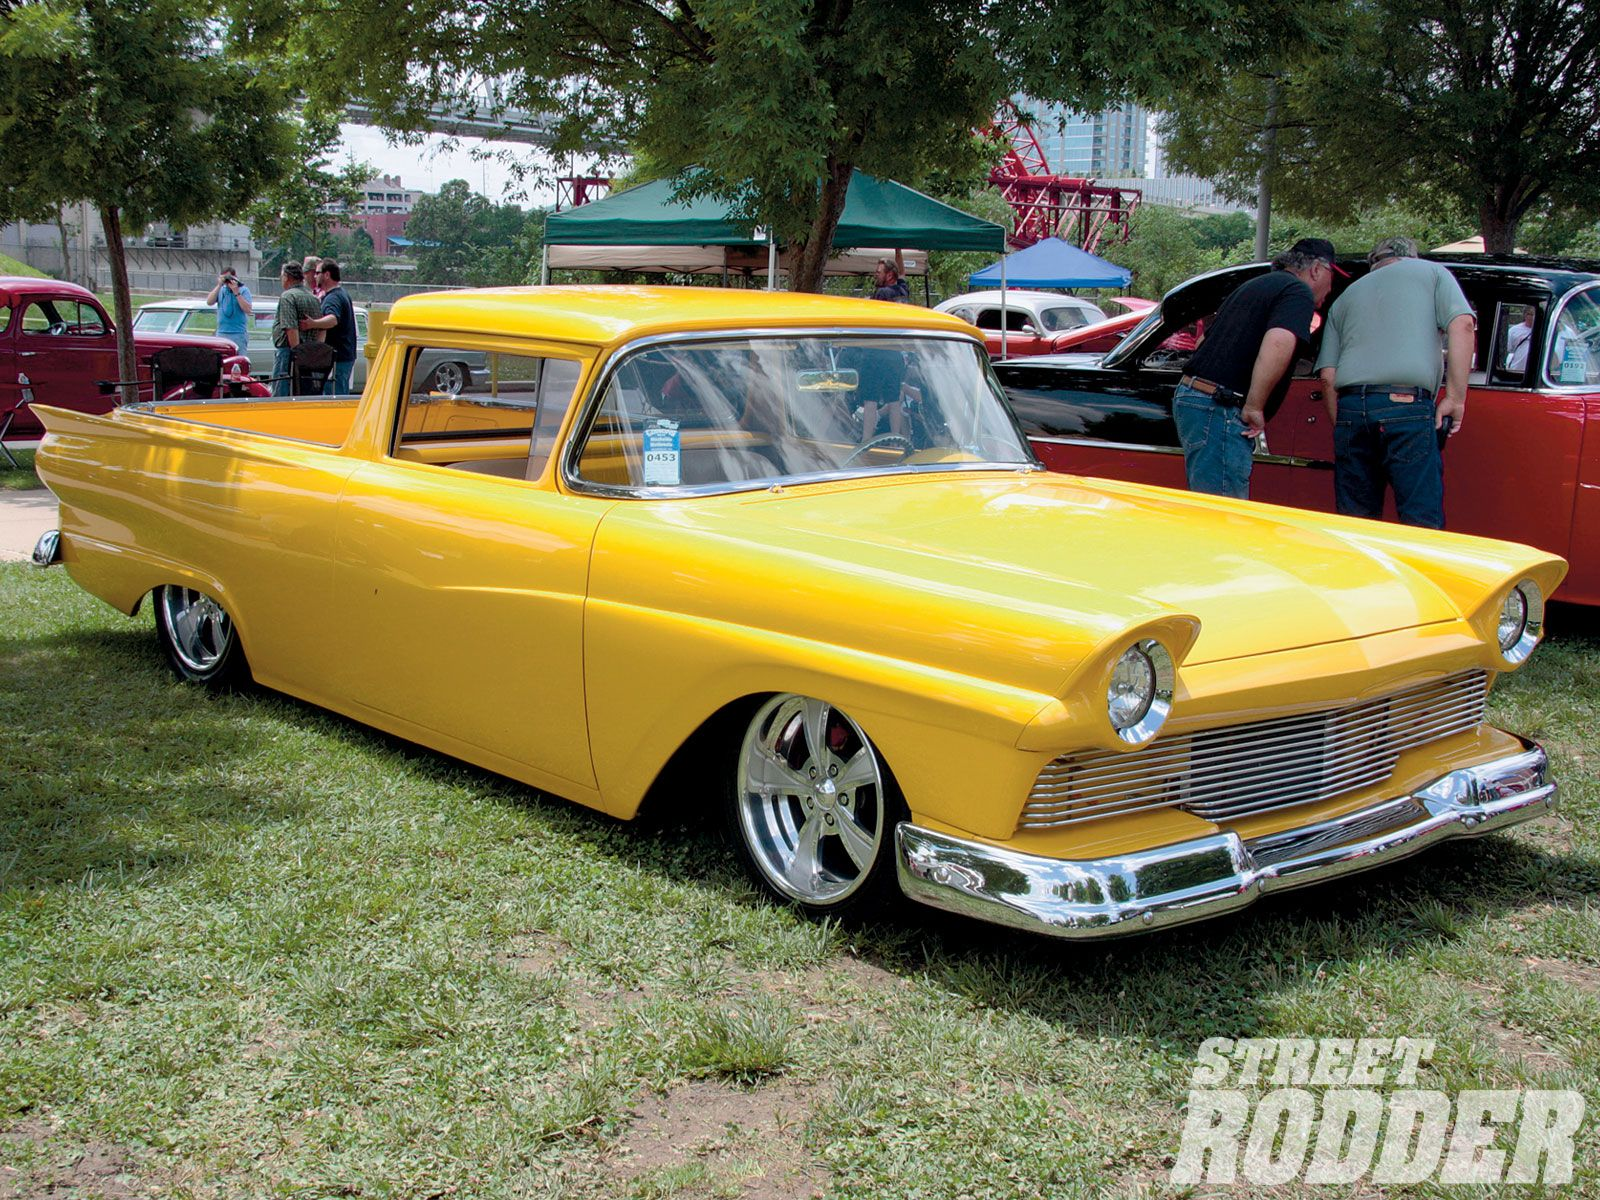 1957 ford ranchero ahh the days of scallop paint jobs before lace fogging and cobweb panel painting custom cars trucks pinterest ford